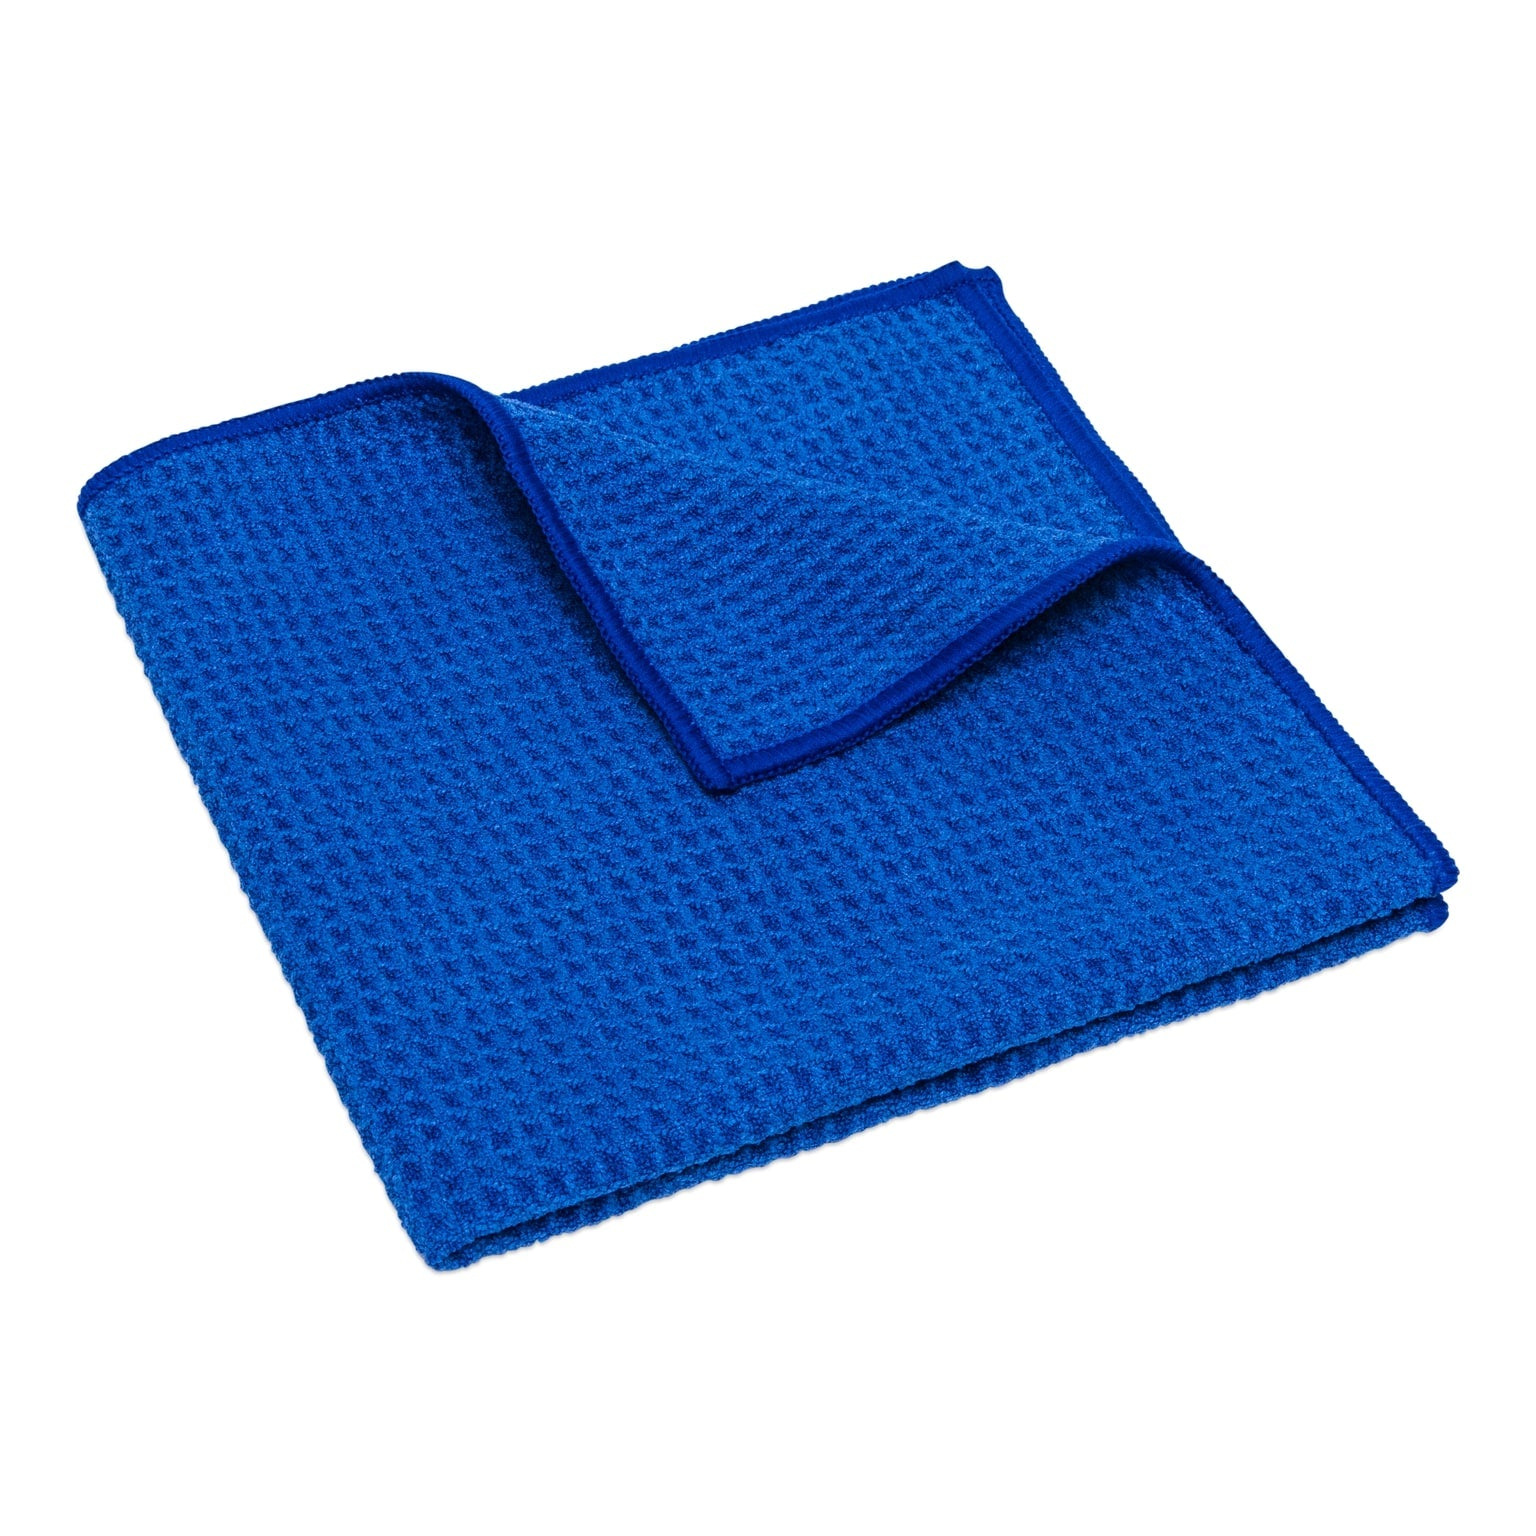 Blue Waffle Weave Dish Towels Wholesale